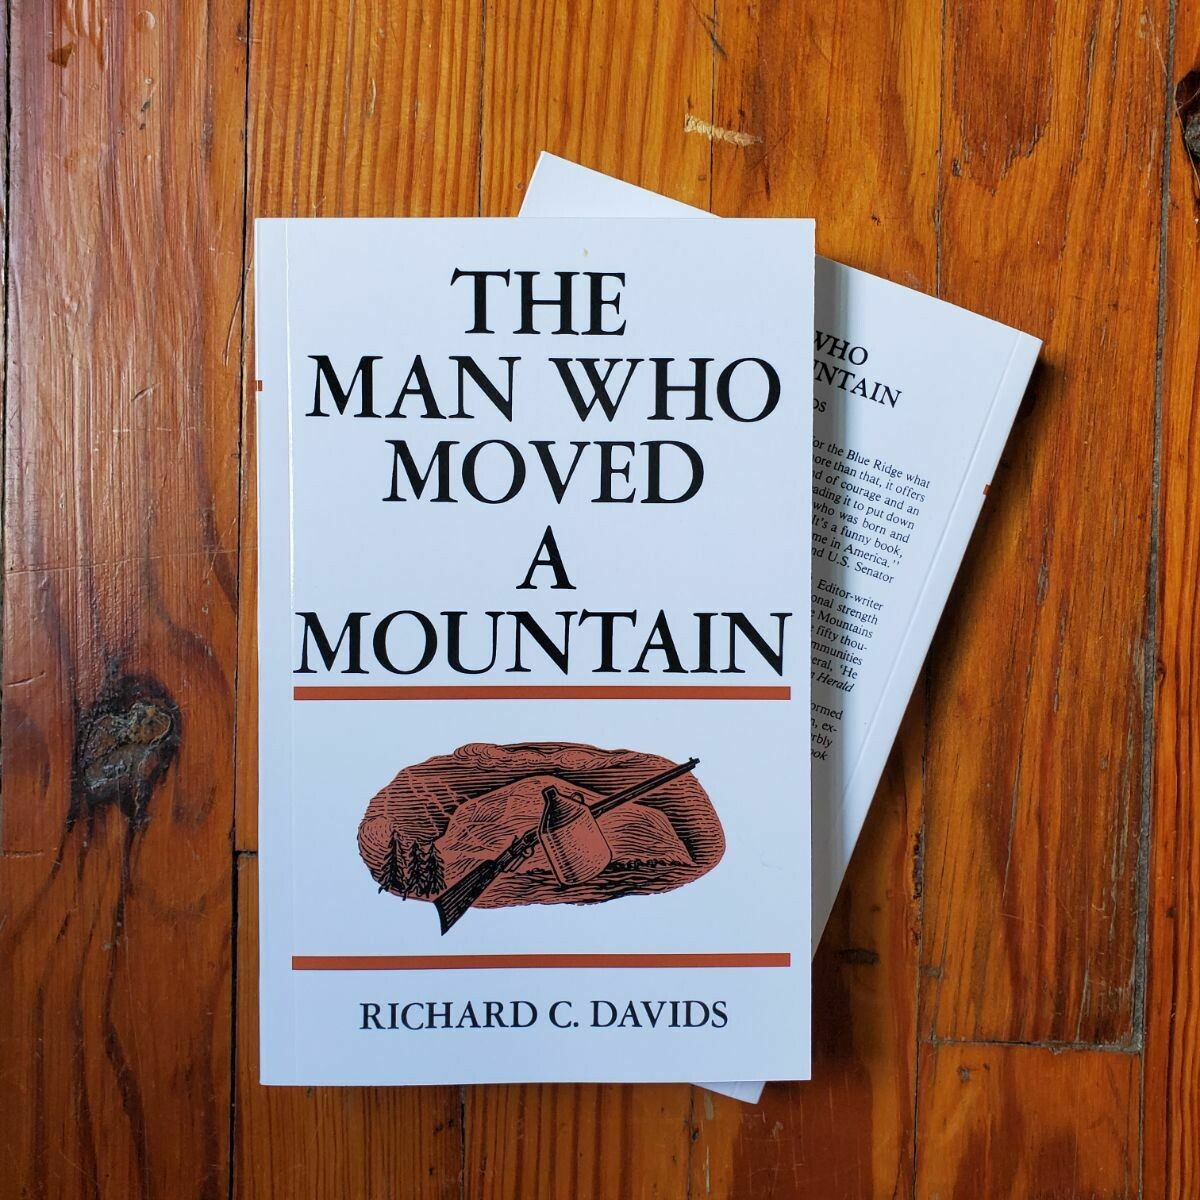 The Man Who Moved A Mountain by: Richard C. Davids